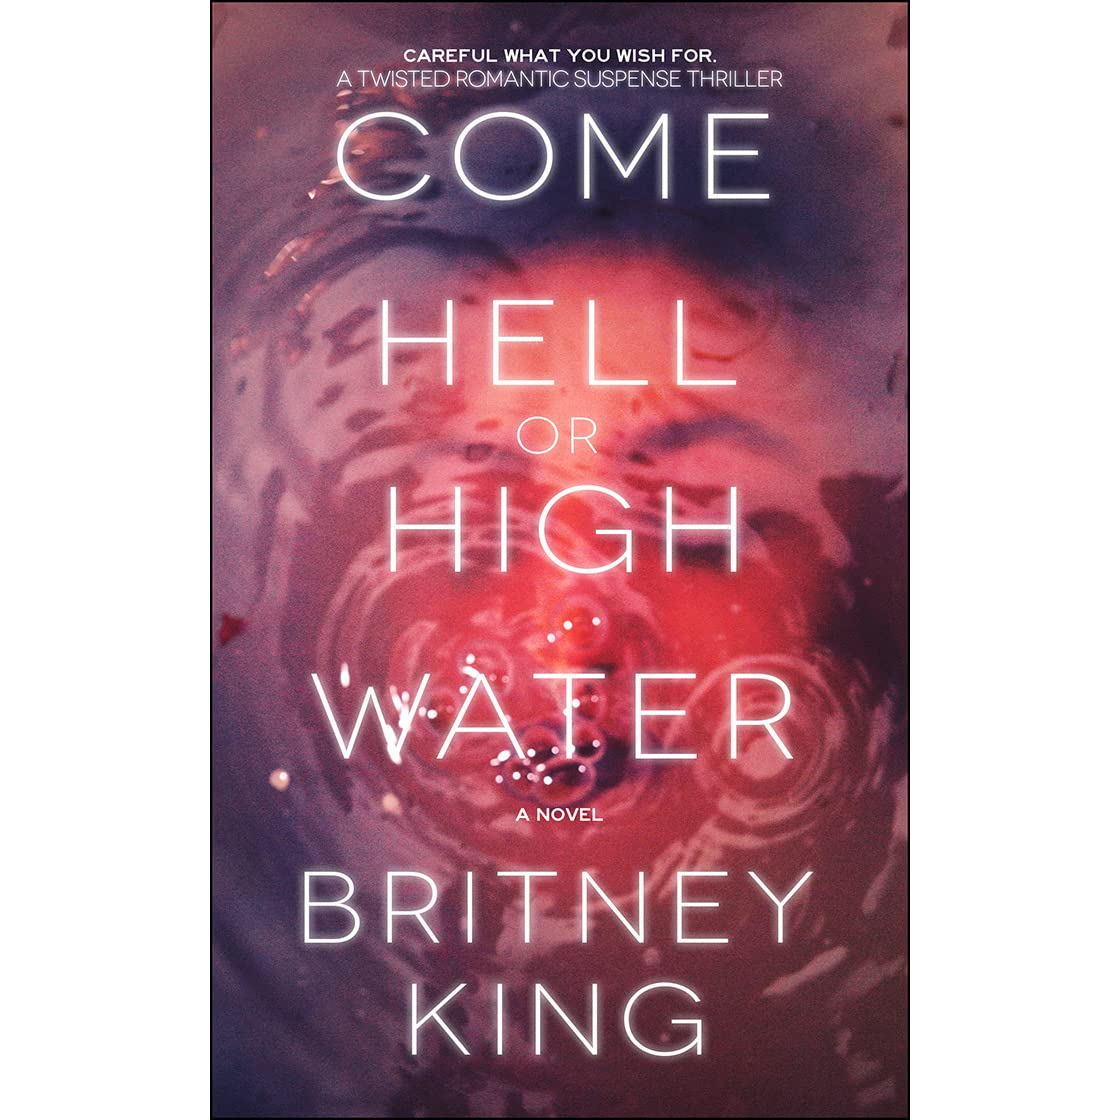 Image result for Come Hell or High Water by Britney King